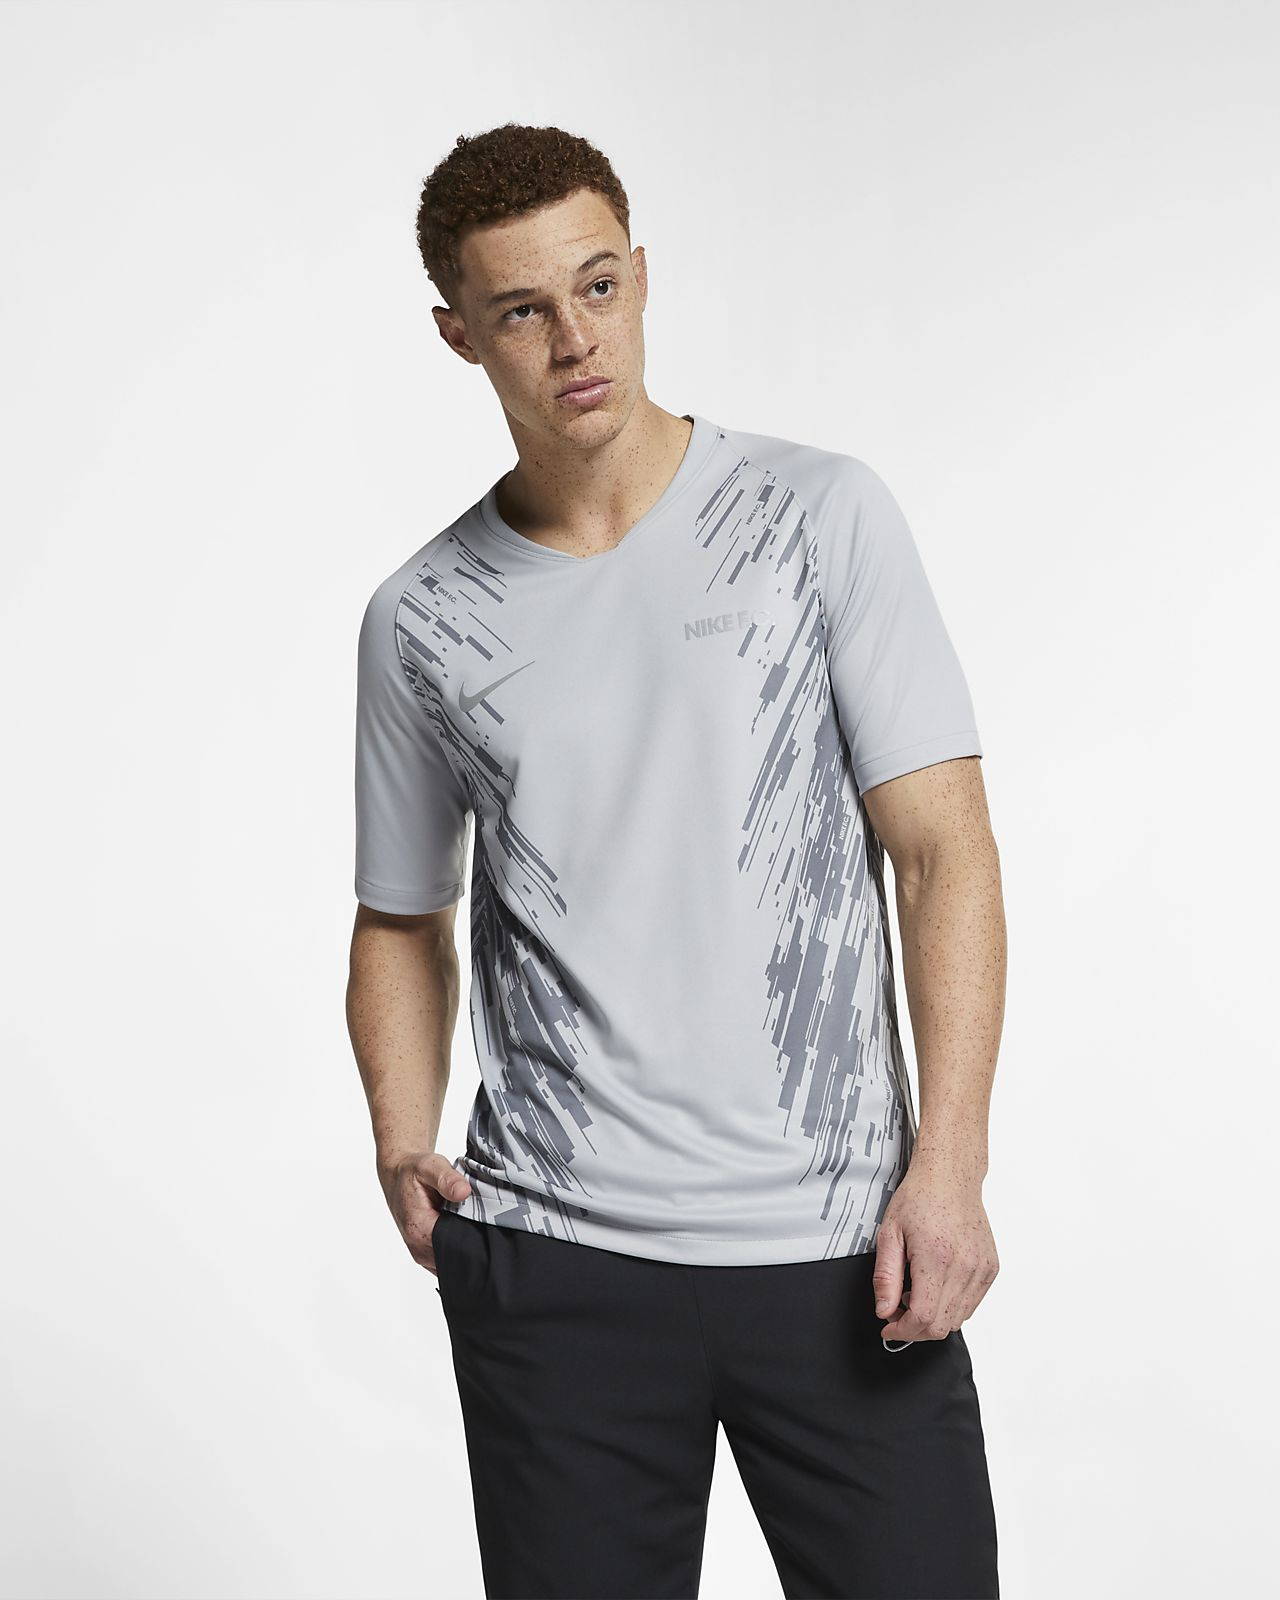 Nike F.C. Men's Football Shirt